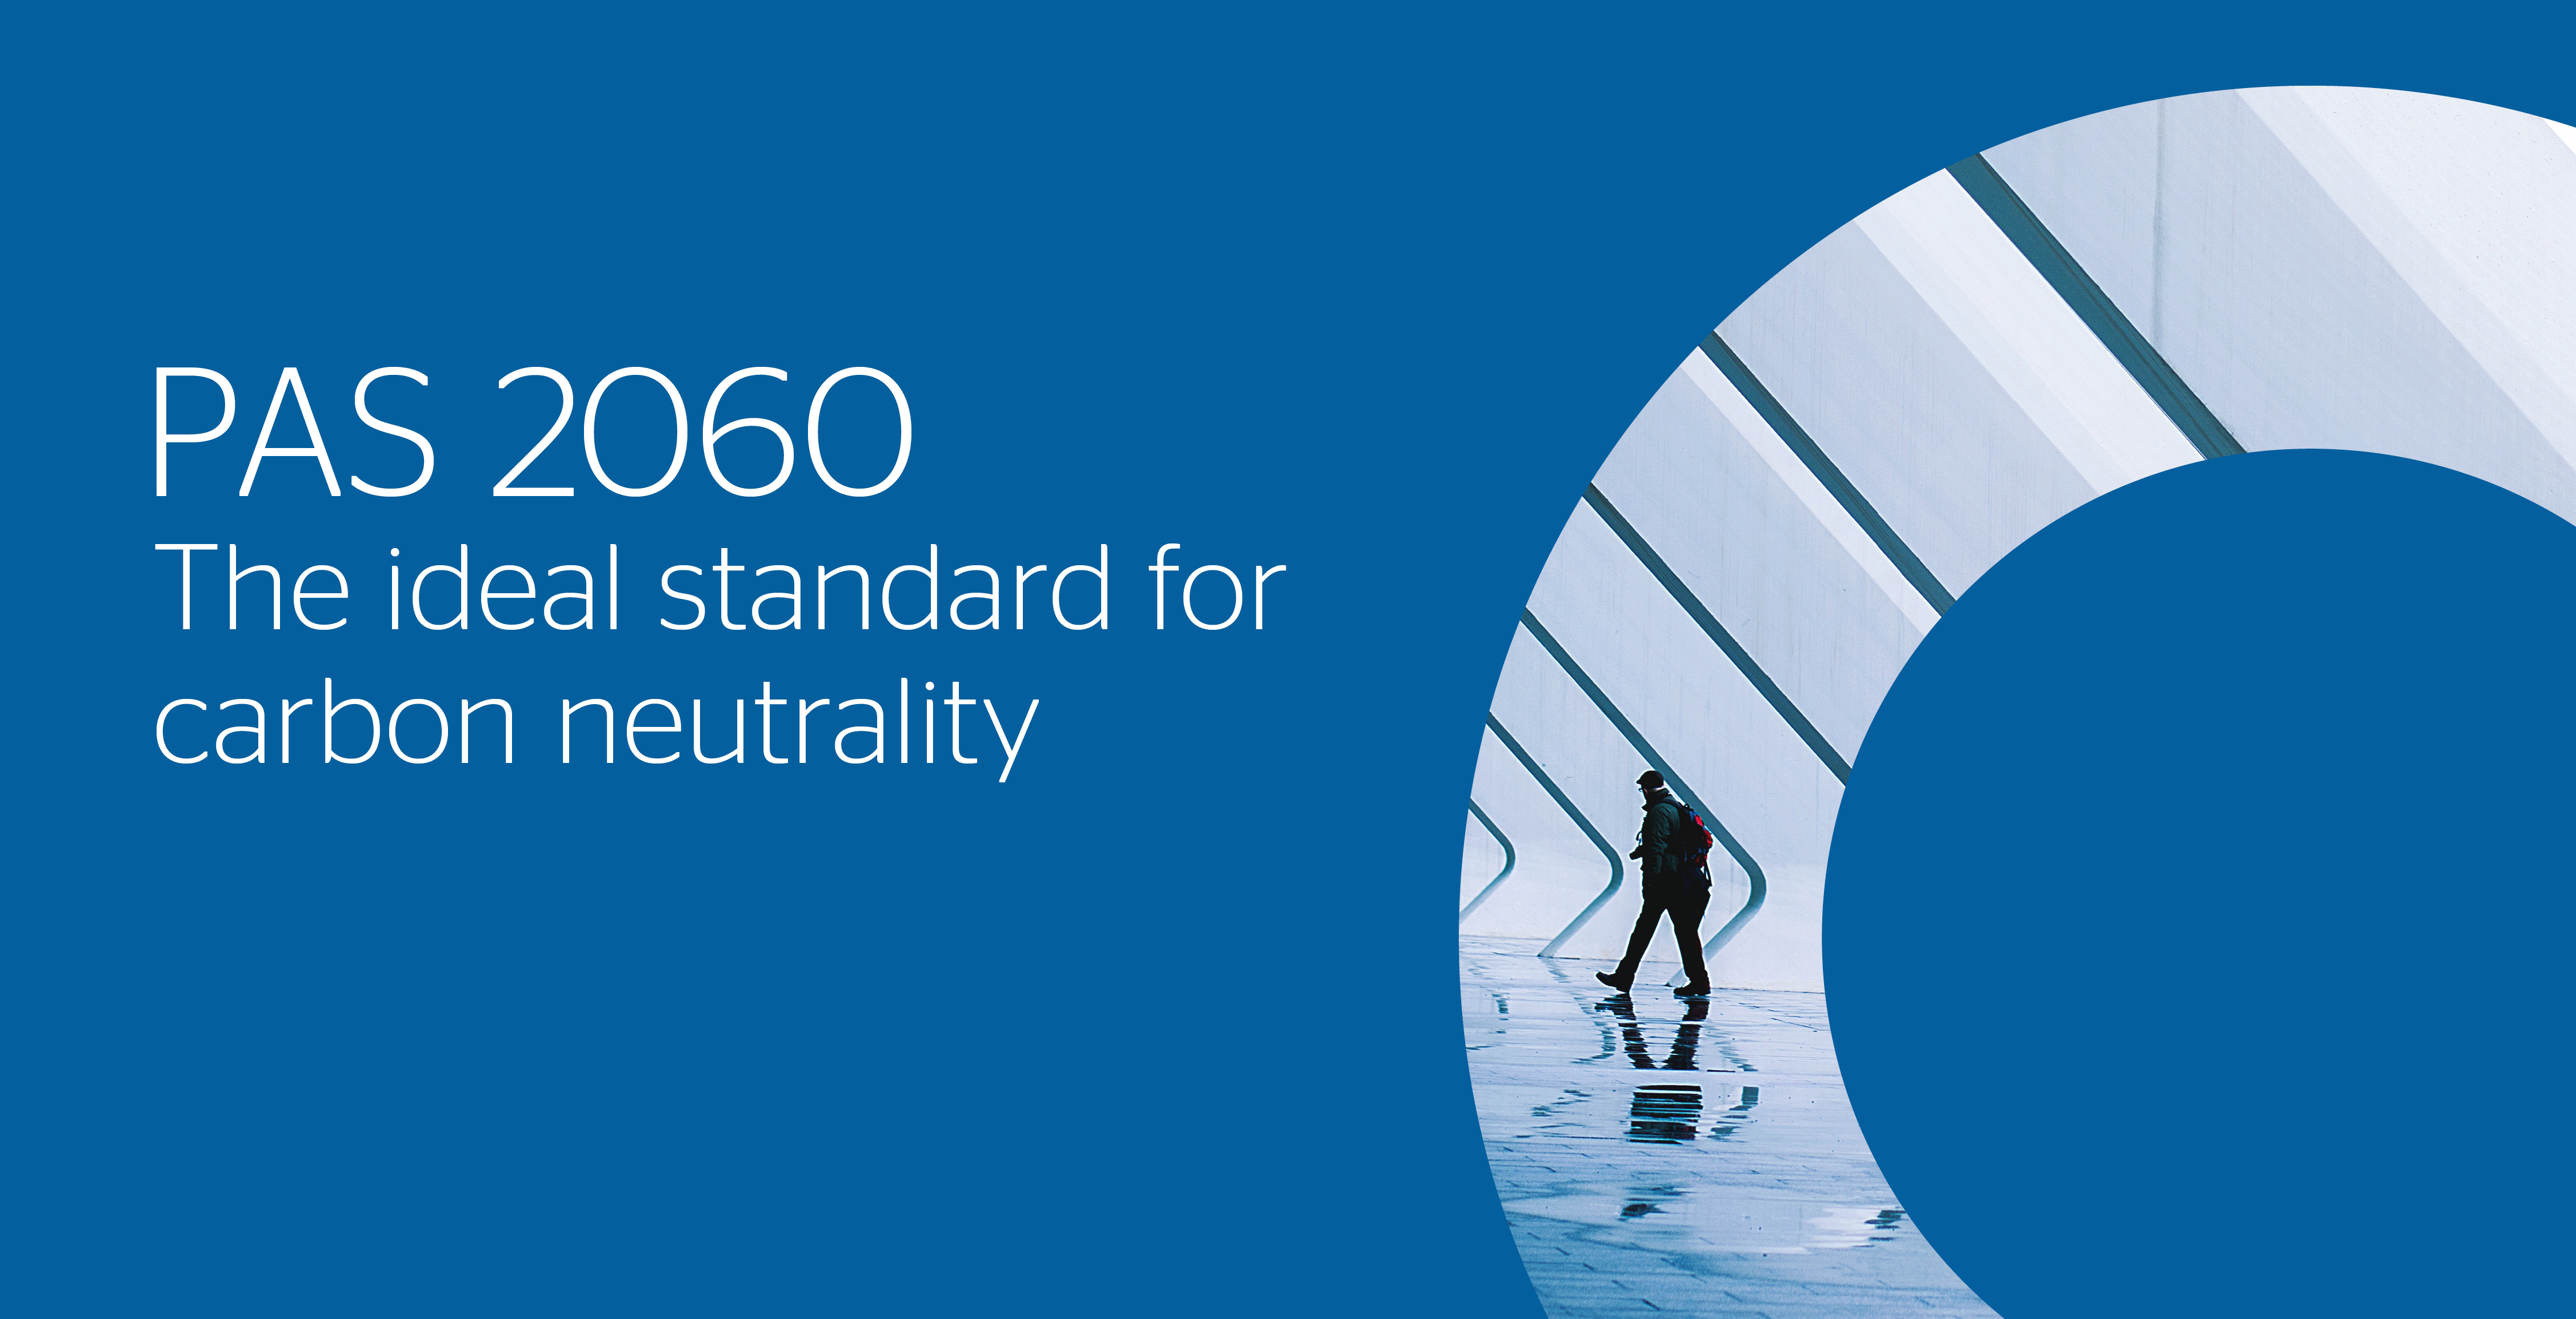 PAS 2060: The ideal standard for carbon neutrality